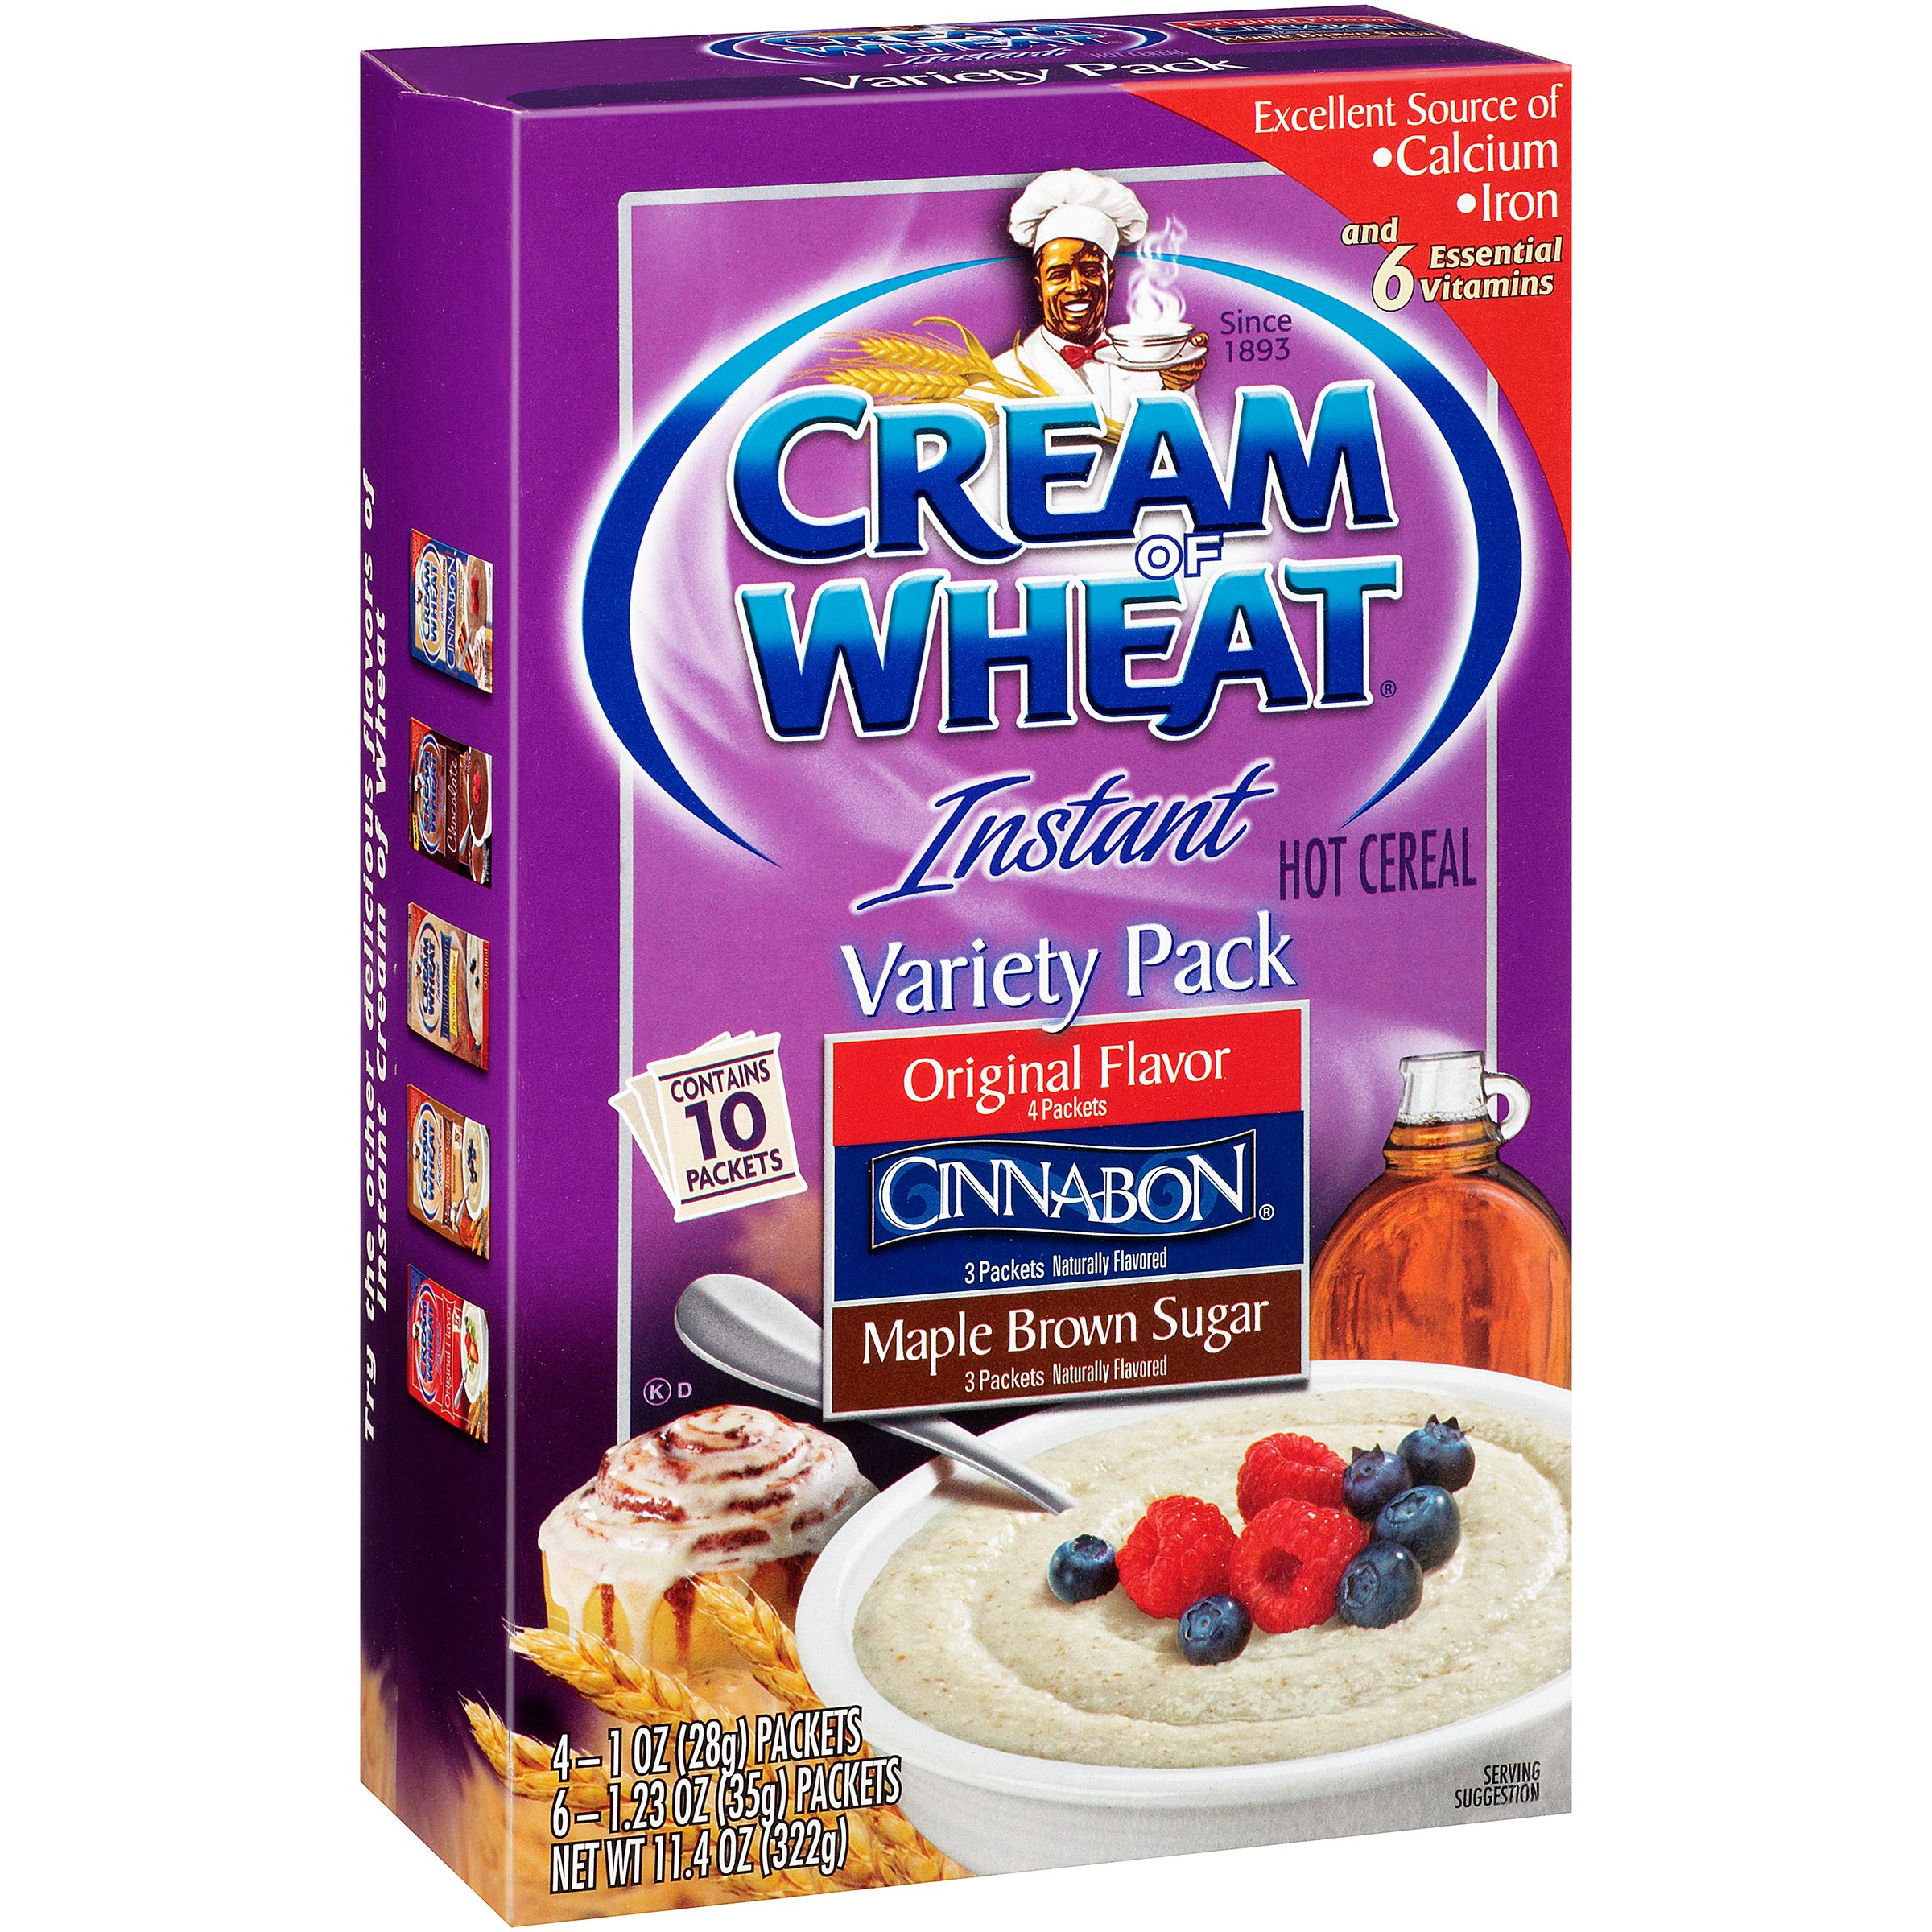 Cream Of Wheat Instant Hot Cereal, Variety Pack, 11.4 Oz, 10 Ct